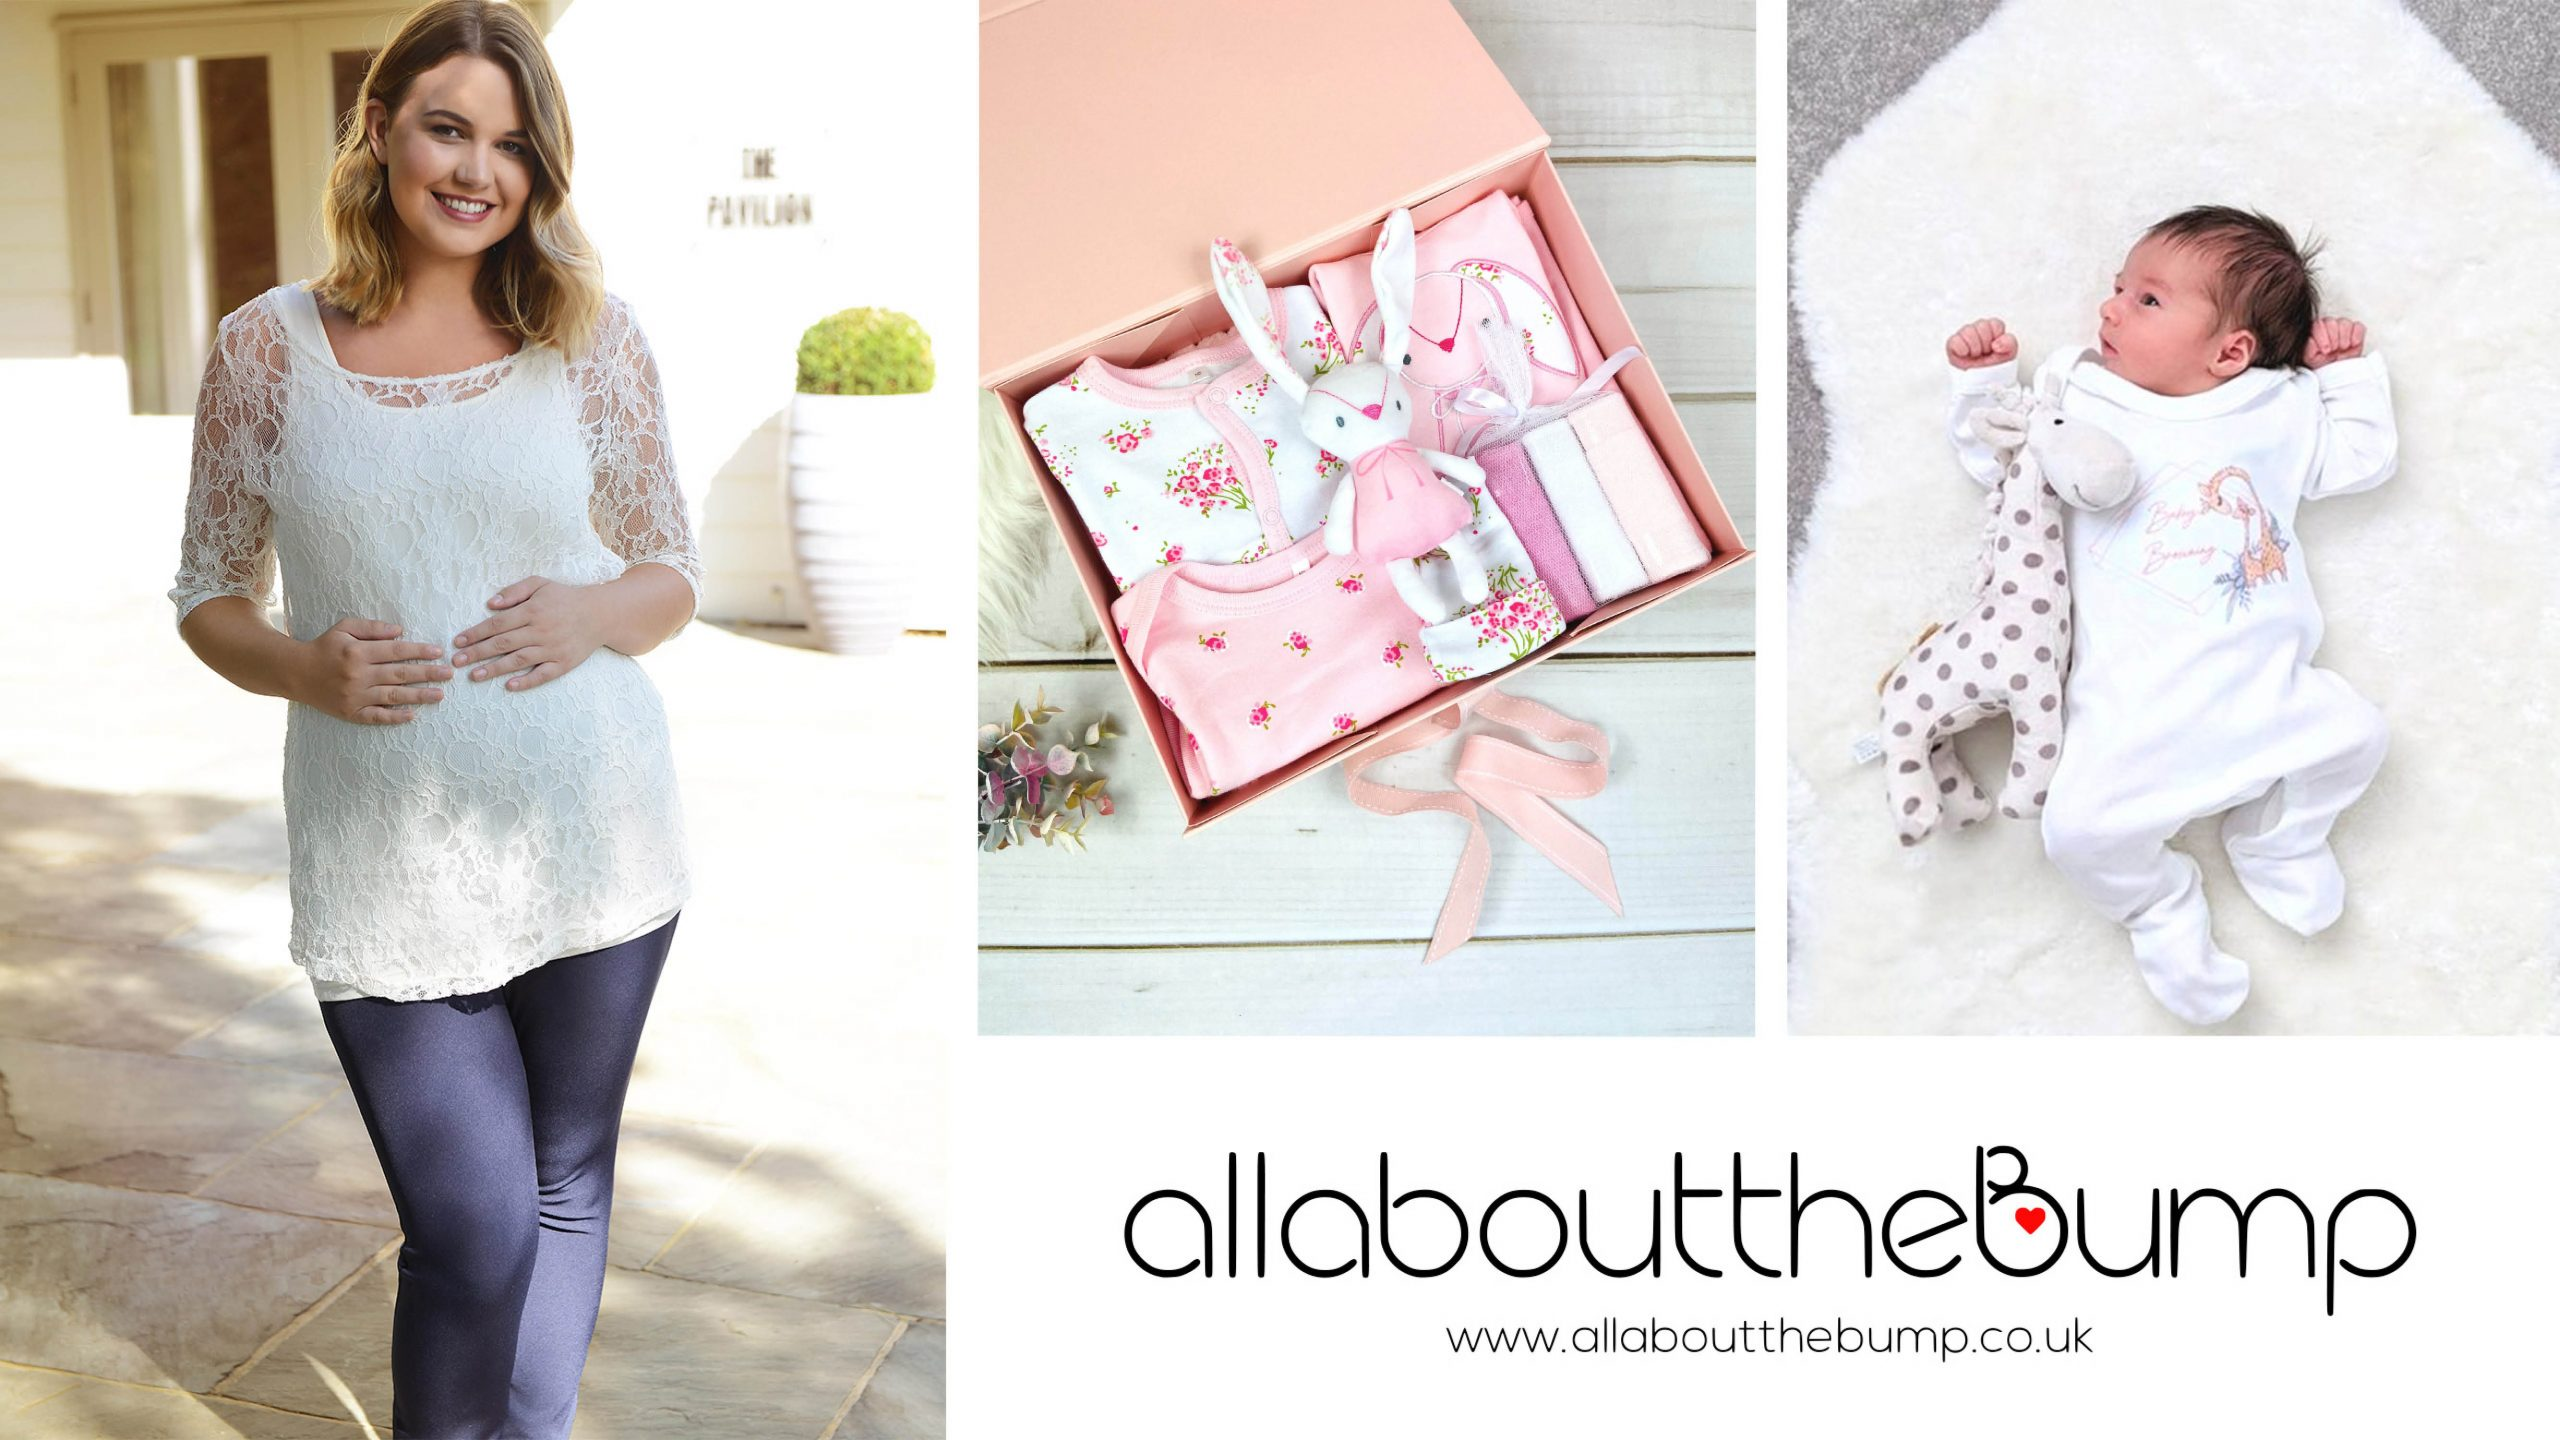 Win a voucher to spend on maternity clothing and baby items Worth £100!